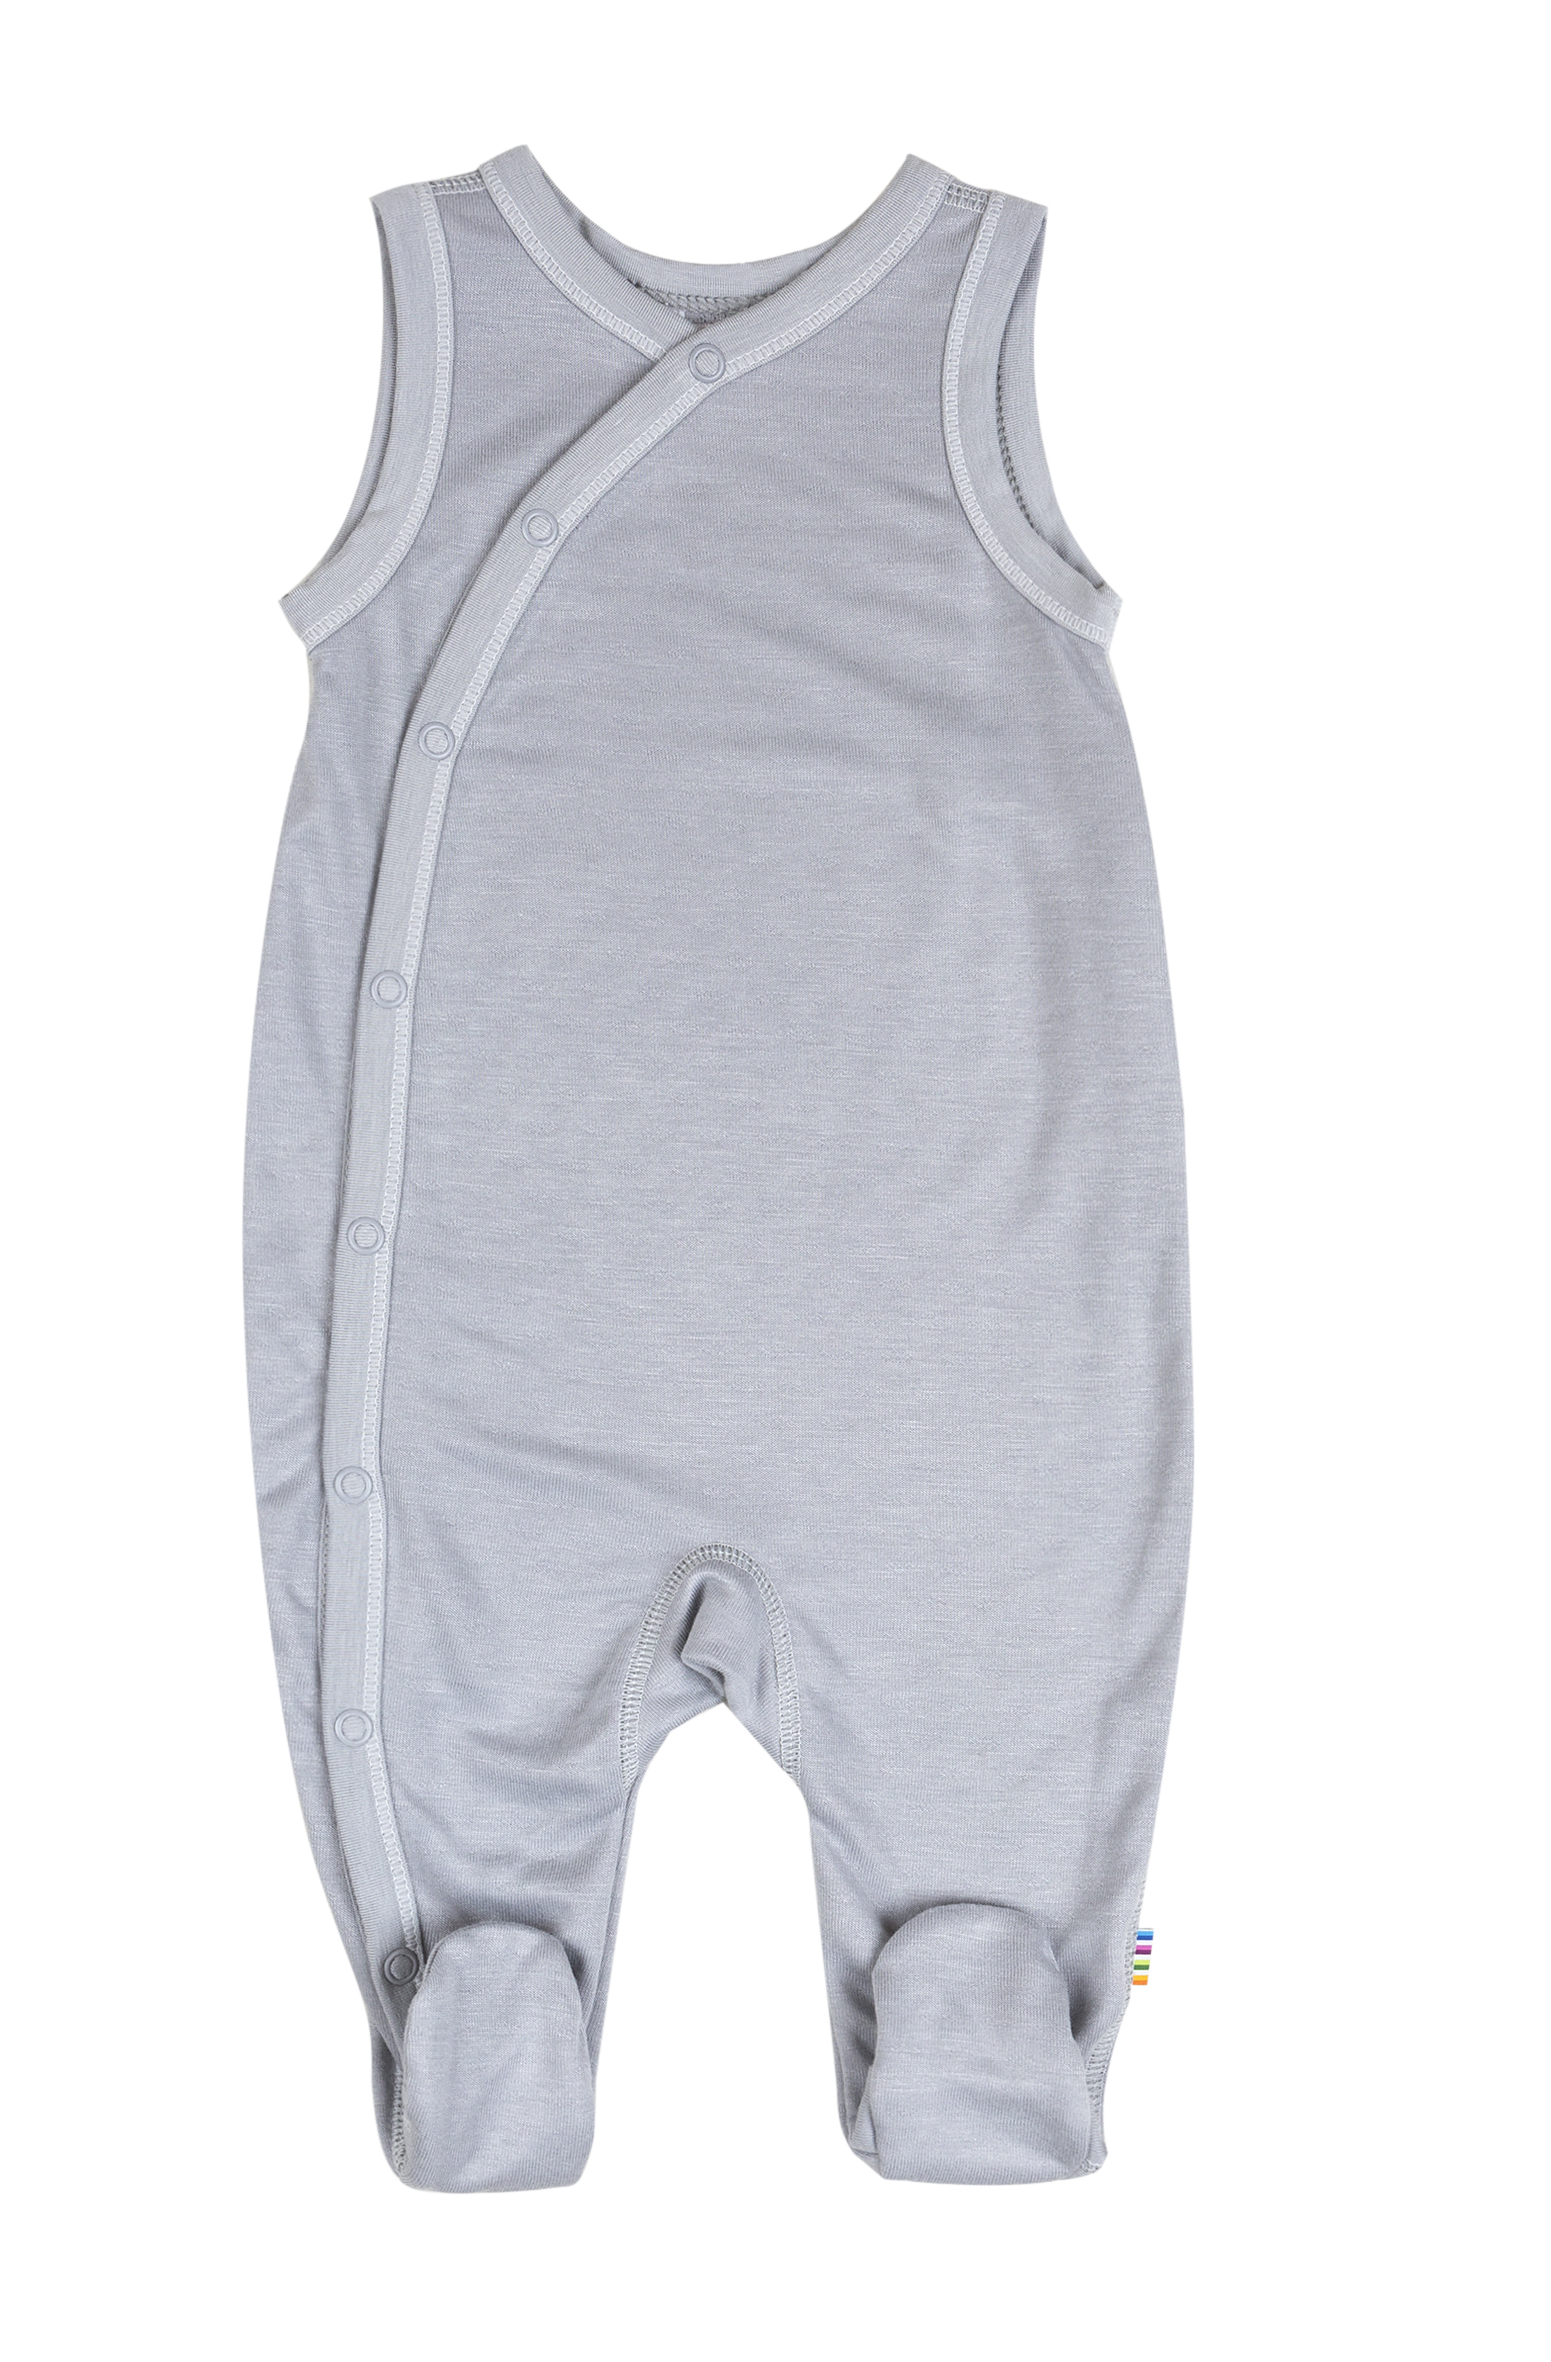 Joha romper bamboo light grey Engelchen flieg